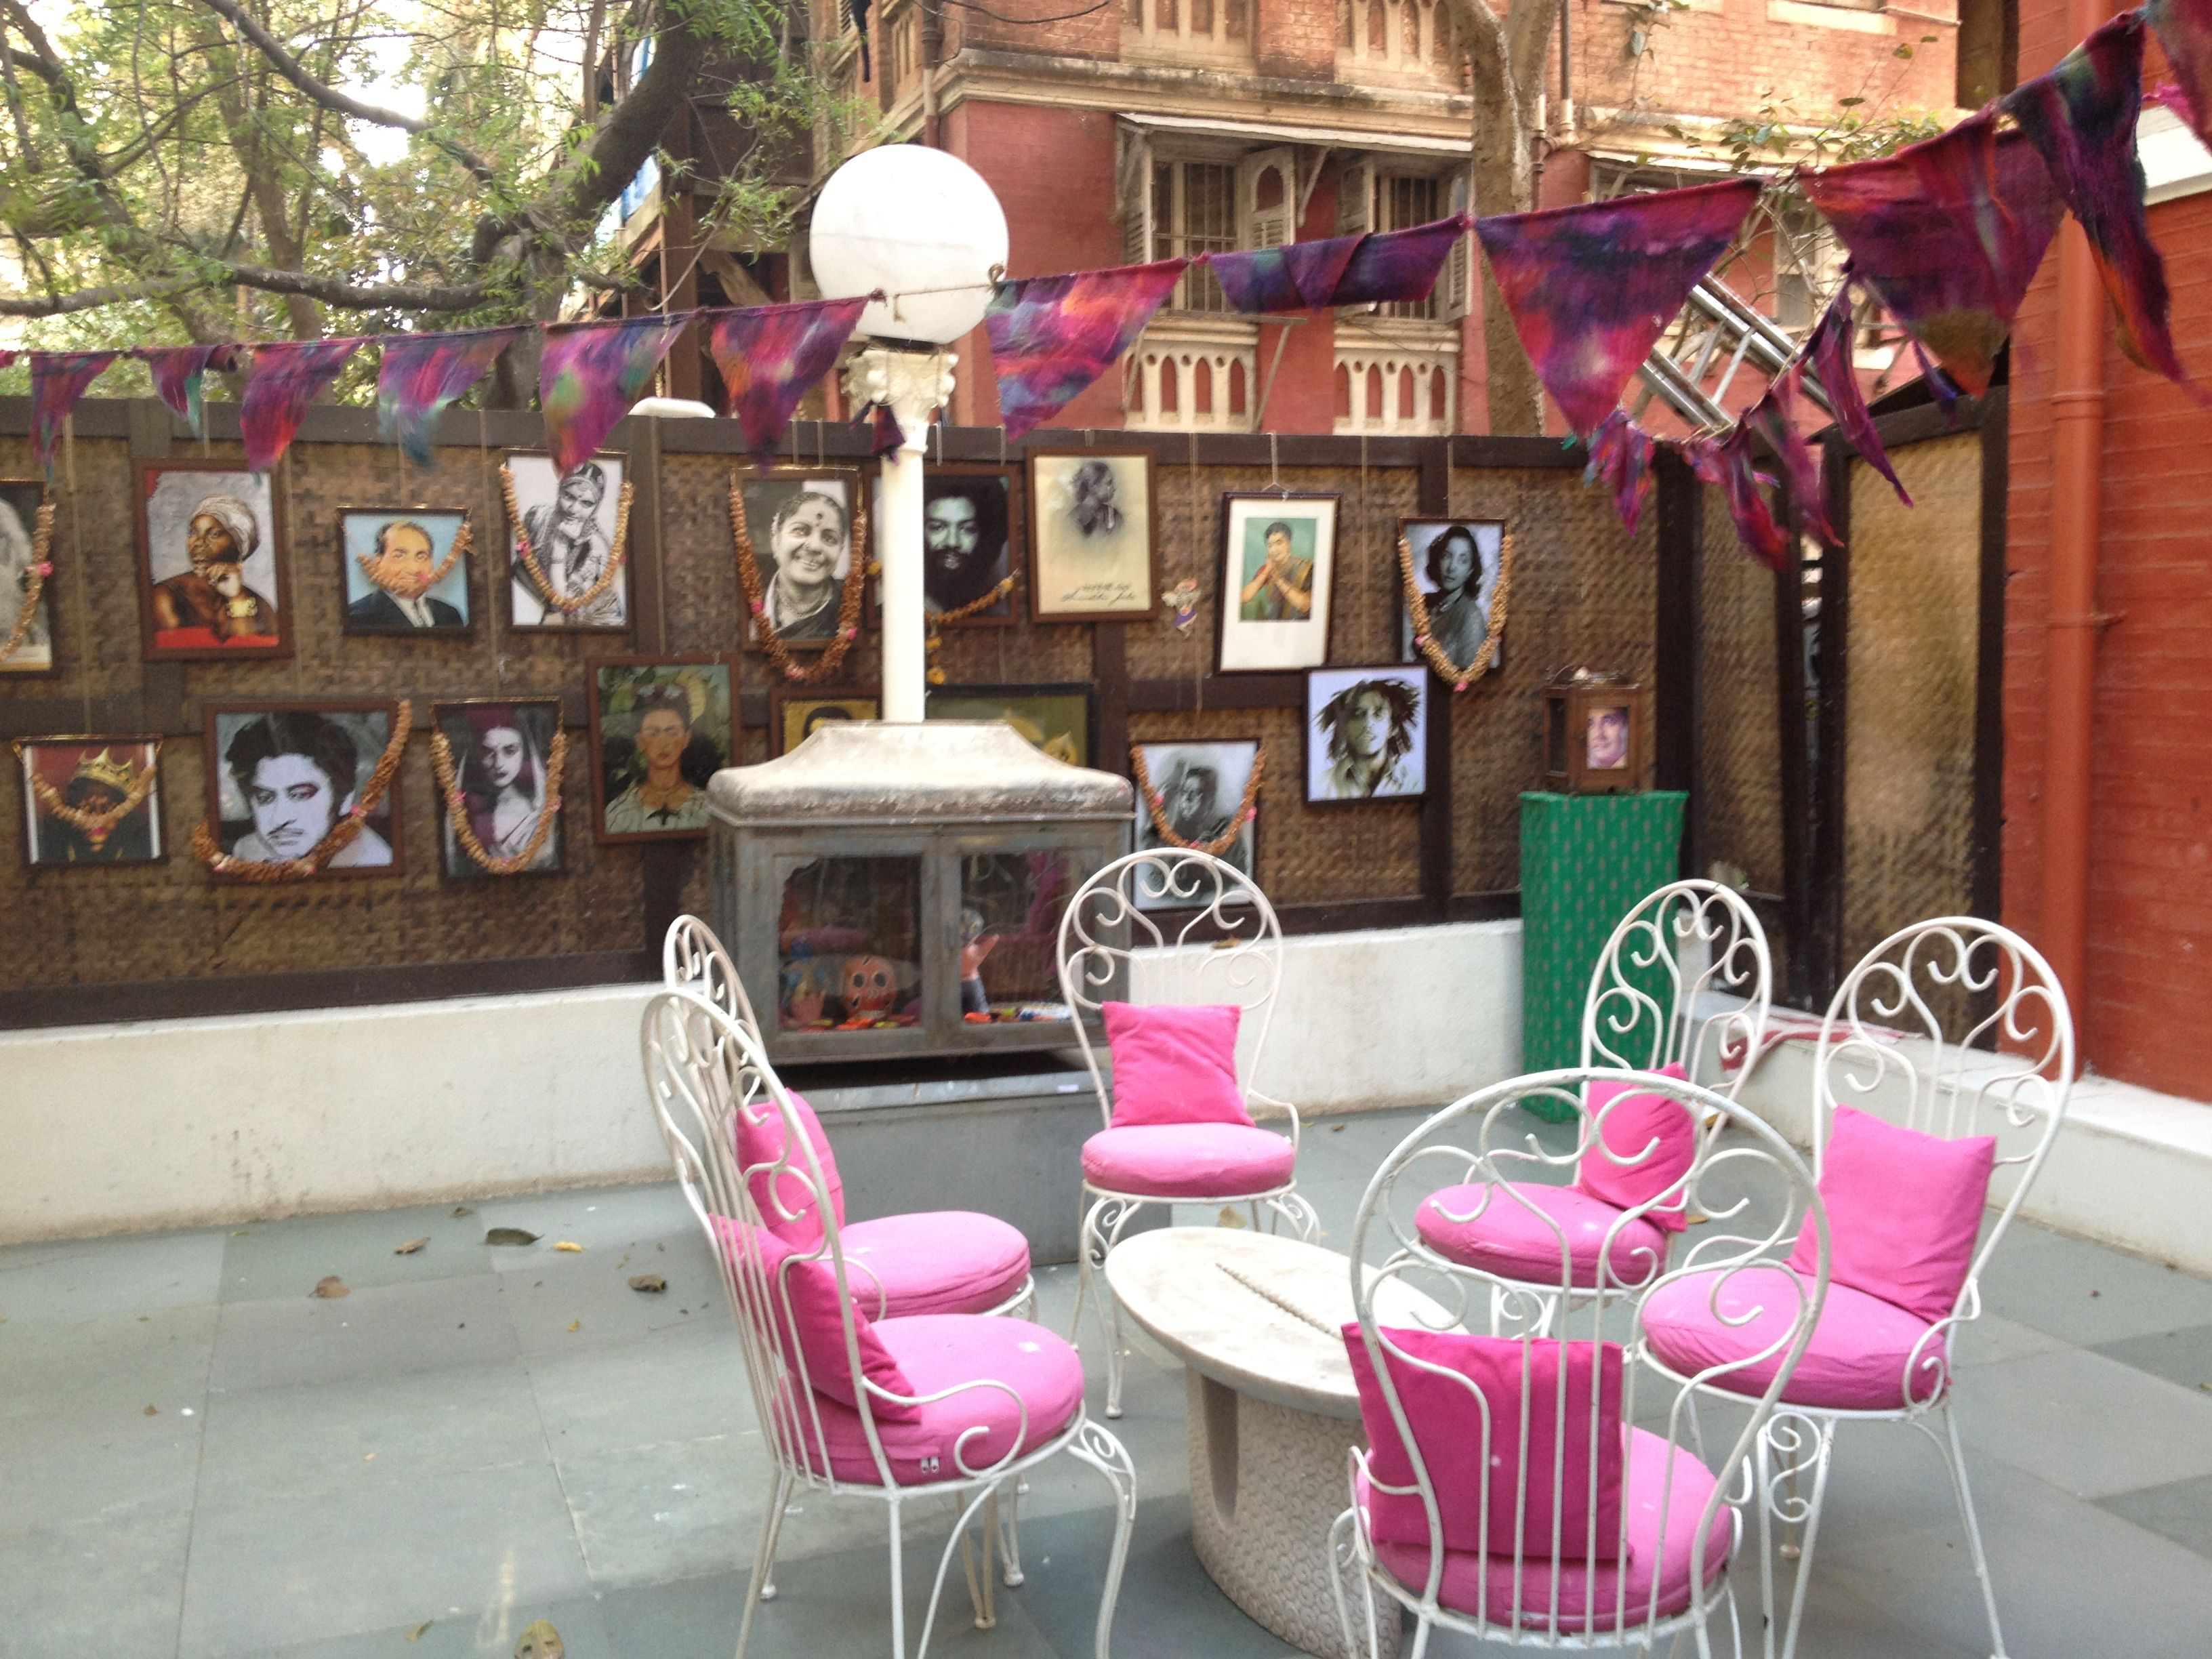 sofa cleaning services mumbai bekas jakarta pink patio furniture in the courtyard at bombay electric